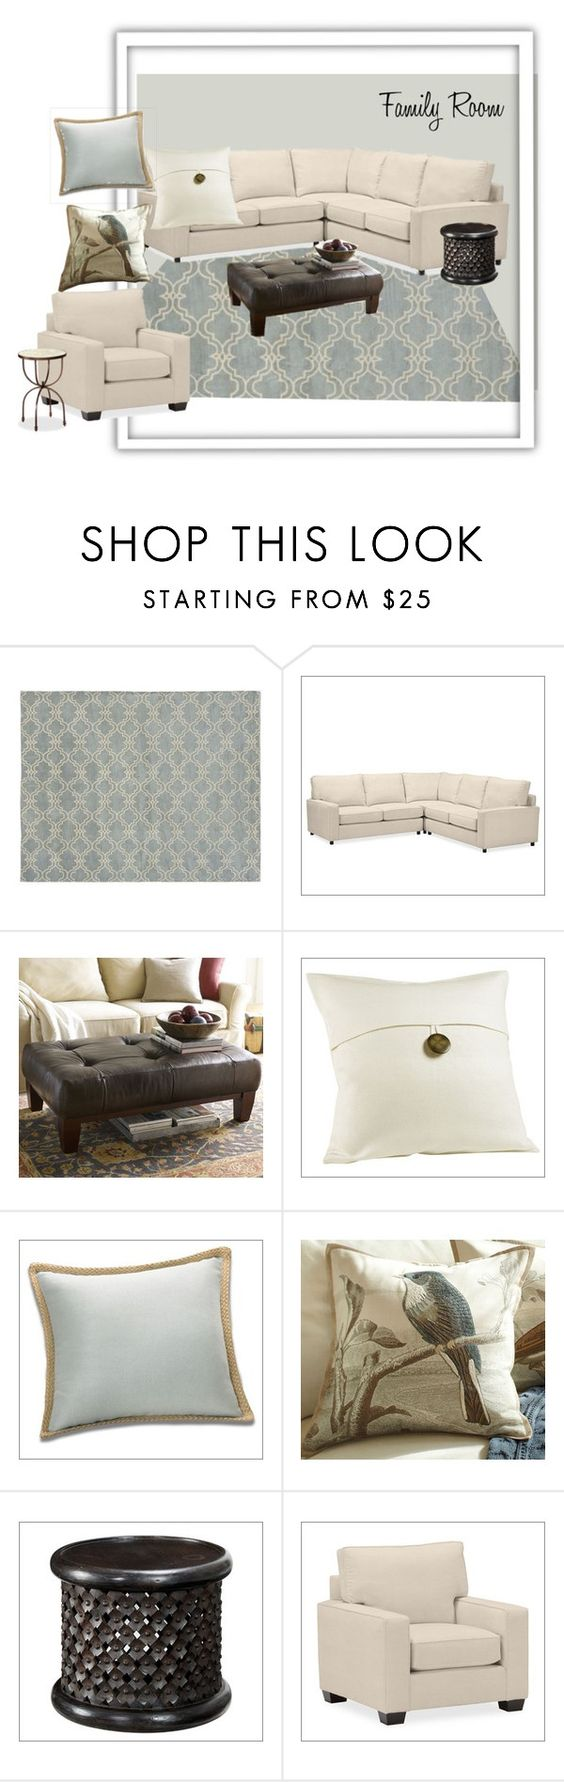 """marni family room"" by pbdesignrose ❤ liked on Polyvore featuring interior, interiors, interior design, home, home decor, interior decorating, Benjamin Moore and Pottery Barn"